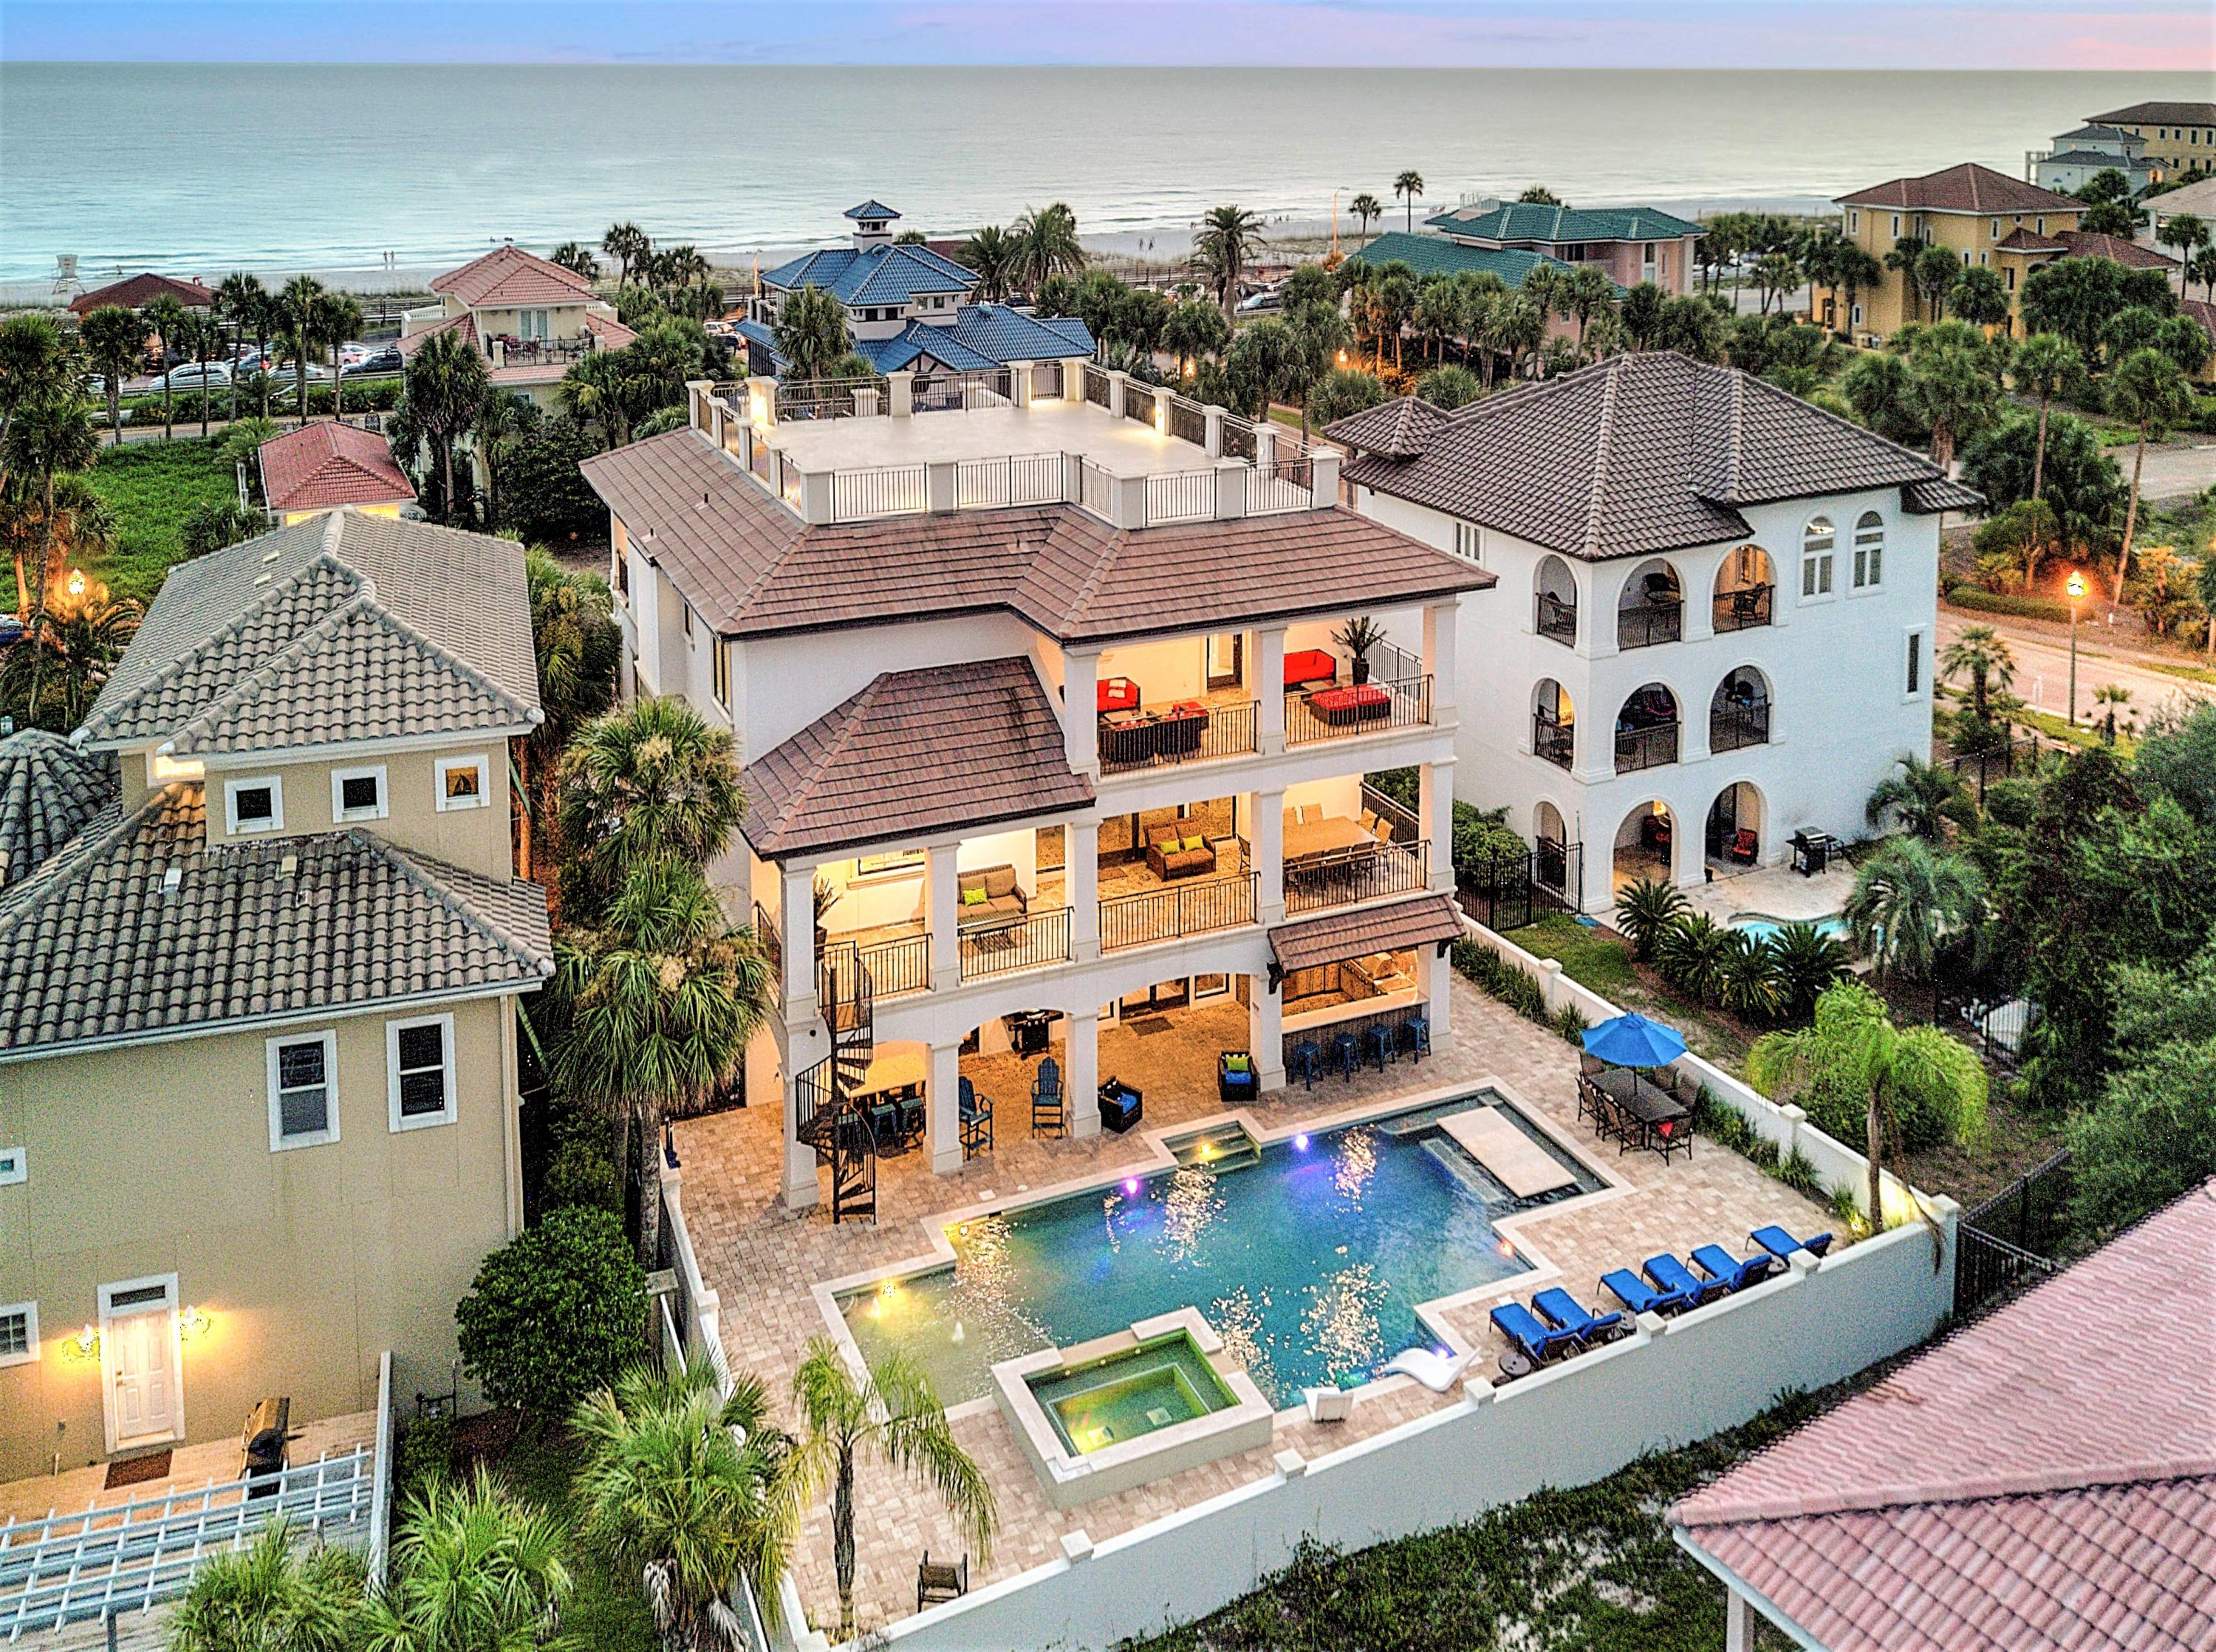 This exquisite 7 bedroom home just steps from the beach is what coastal dreams are made of! Located in the highly-coveted gated community of Destiny and sprawling across three levels, this home is thoughtfully designed to create the ideal beach house. The coastal contemporary design matched with the luxurious amenities provides maximum comfort, as well as functionality. This home encompasses 5,491 square feet of indoor living space and over 3,000 square feet of lush outdoor living space featuring a resort style pool and deck complete with a spa conveniently adjacent to the covered summer kitchen. Expansive balconies on the front and back of each level and a viewing deck above not only give you ample outdoor space, but provide exceptional views of the gulf and neighboring lake.